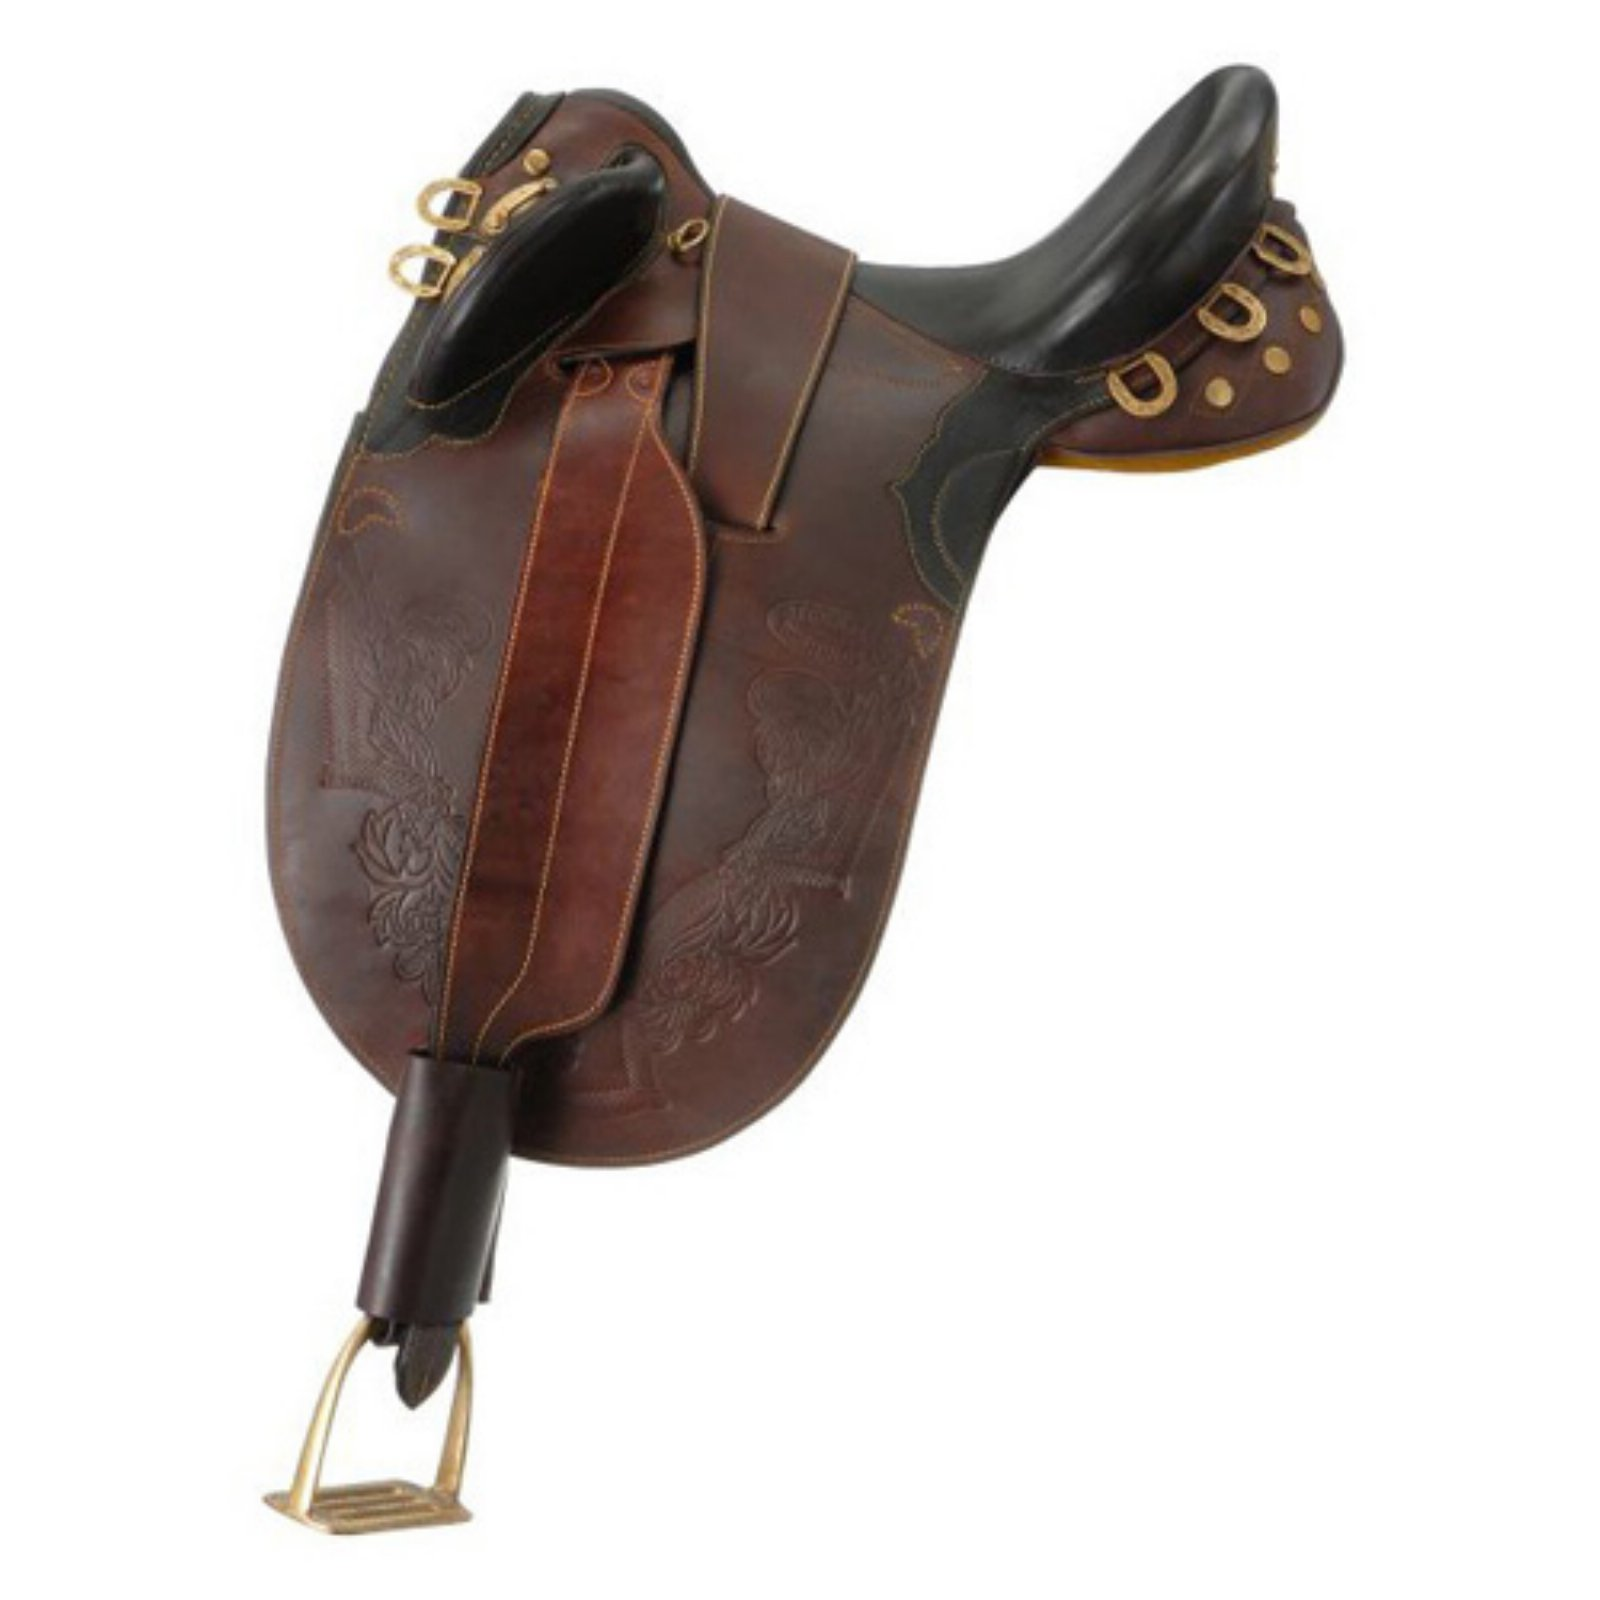 Australian Outrider Collection Stockman Bush without Horn by JT International